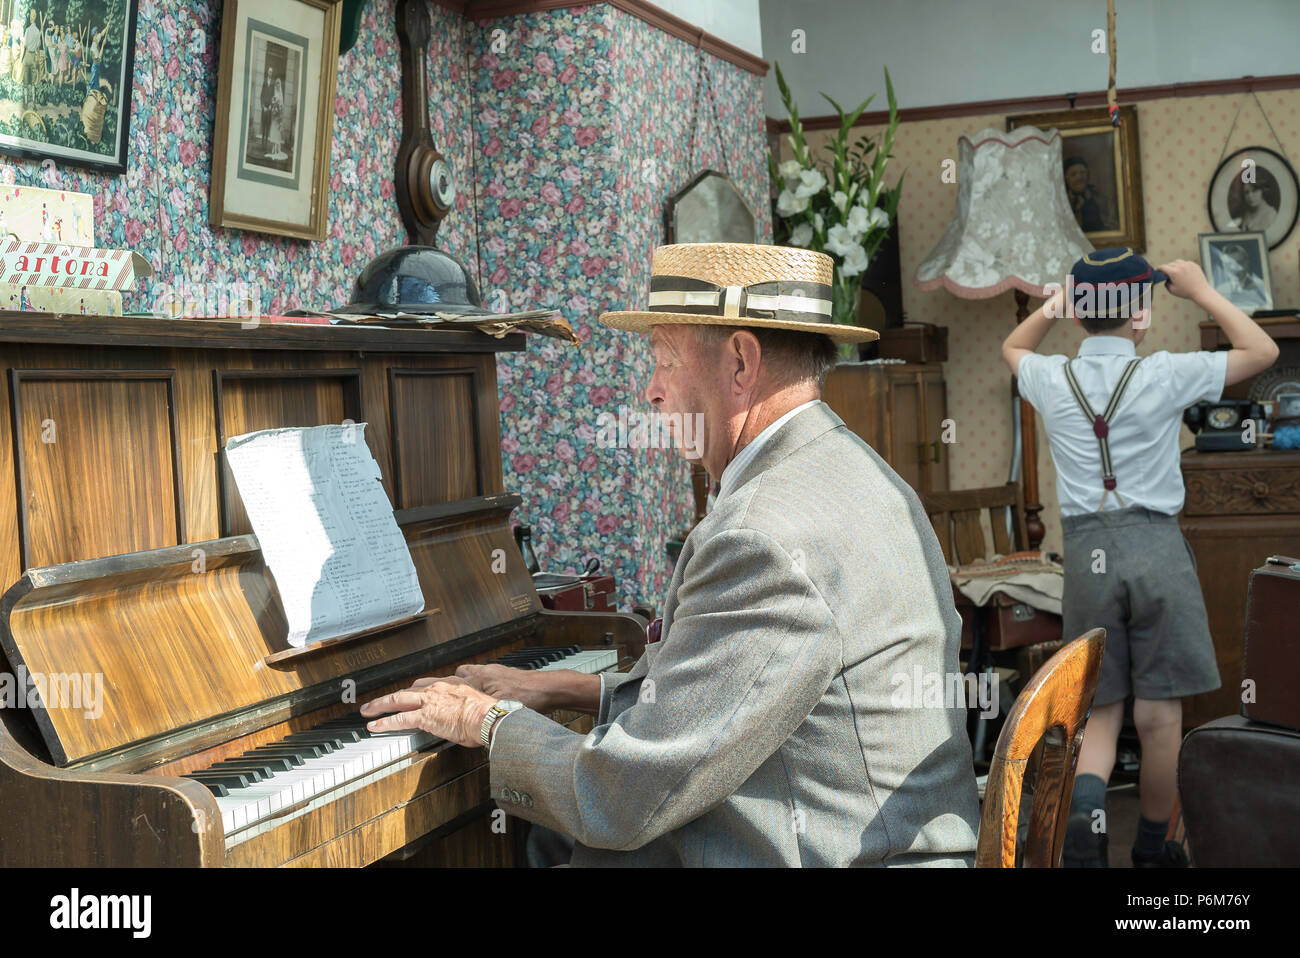 Kidderminster, UK. 1st July, 2018. A journey back in time continues at the Severn Valley Railway as all involved turn the clock back to the 1940s. Visitors and staff pull out all the stops to ensure a realistic wartime Britain is experienced by all on this heritage railway line. Credit: Lee Hudson/Alamy Live News - Stock Image